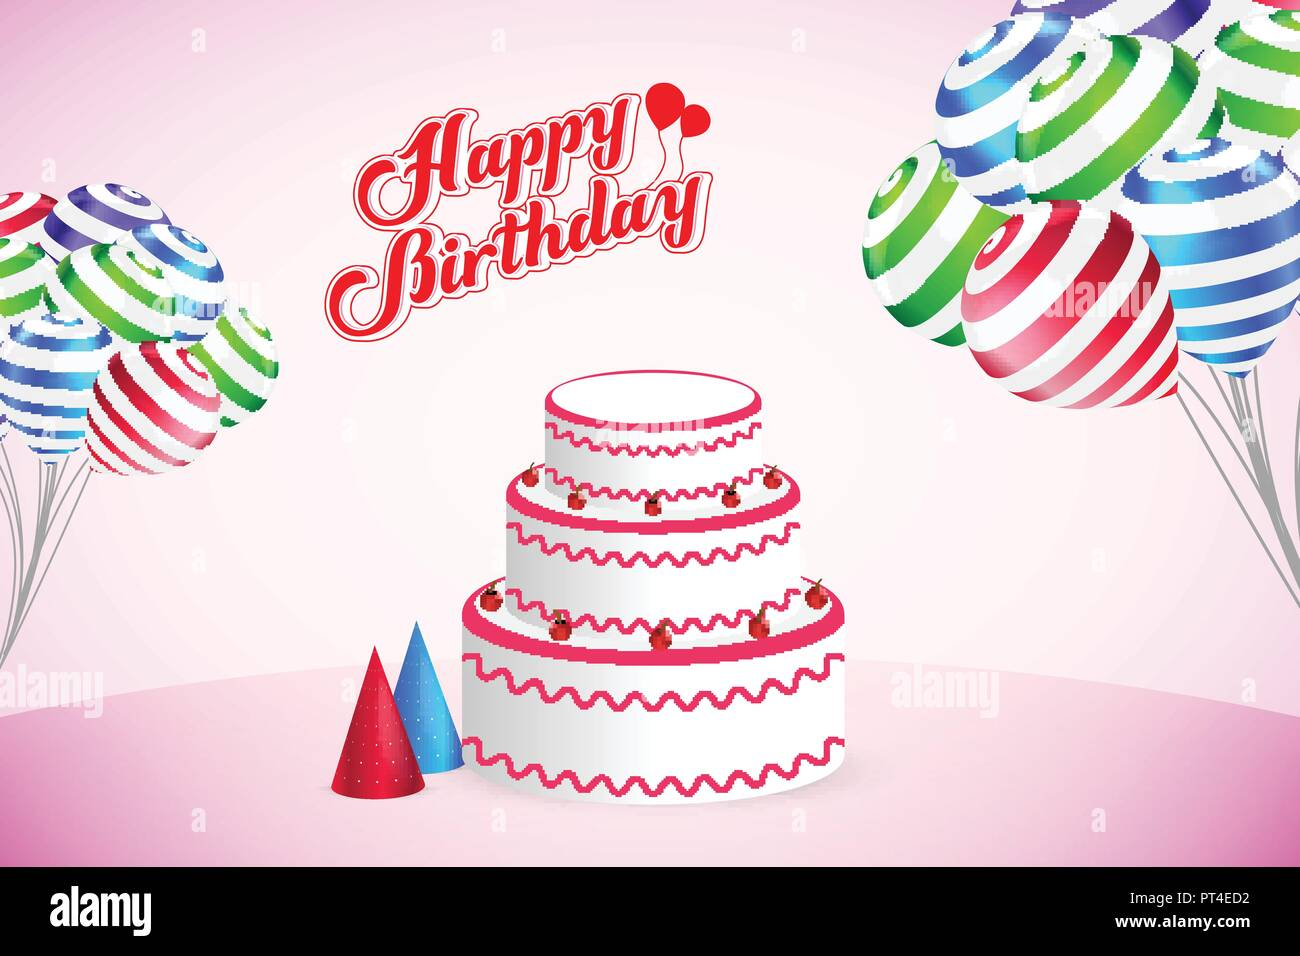 Happy Birthday Party Vector Template Design Background Stock Vector Image Art Alamy